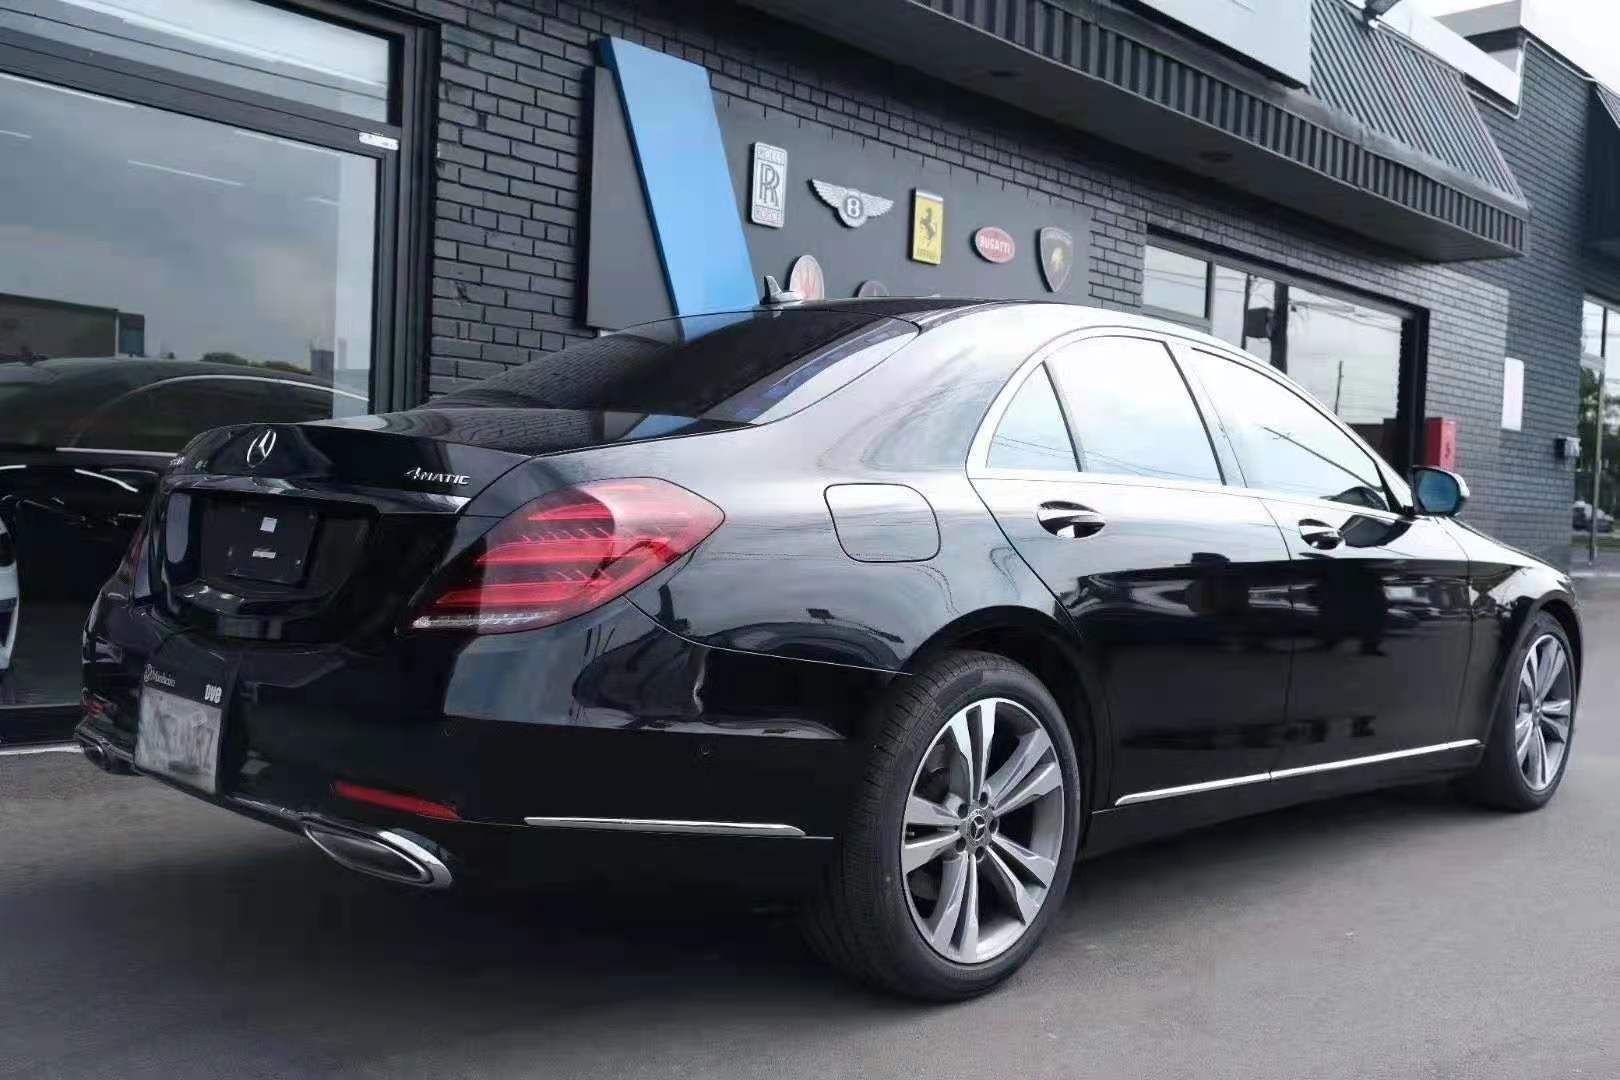 2018 Mercedes-Benz S-Class S560 4 MATIC SEDAN - INFOCAR - Toronto's Most Comprehensive New and Used Auto Trading Platform